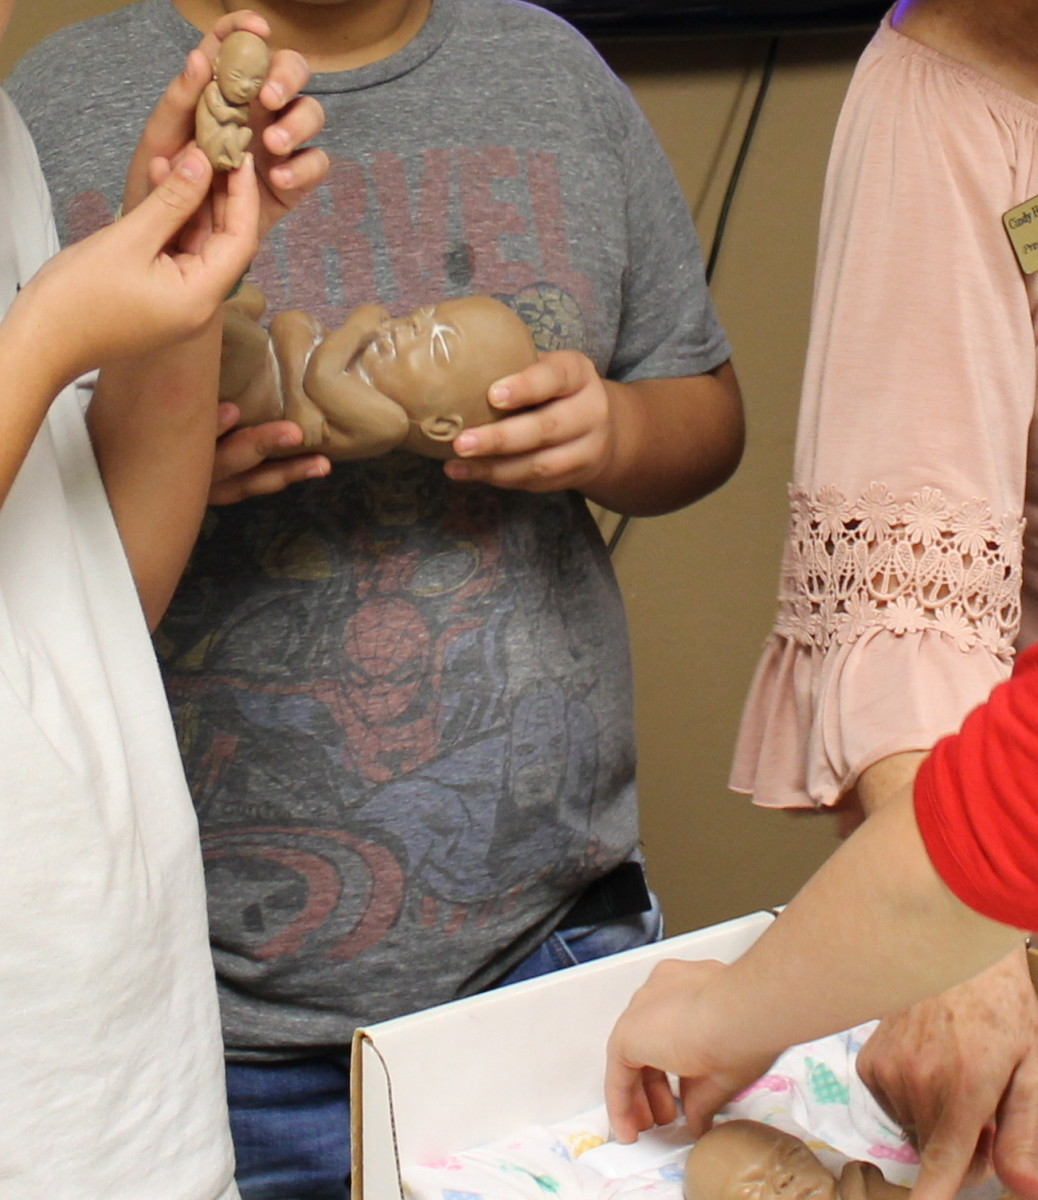 Comparing the size and development of model babies. The smallest one is modeled after a 12 week old baby.